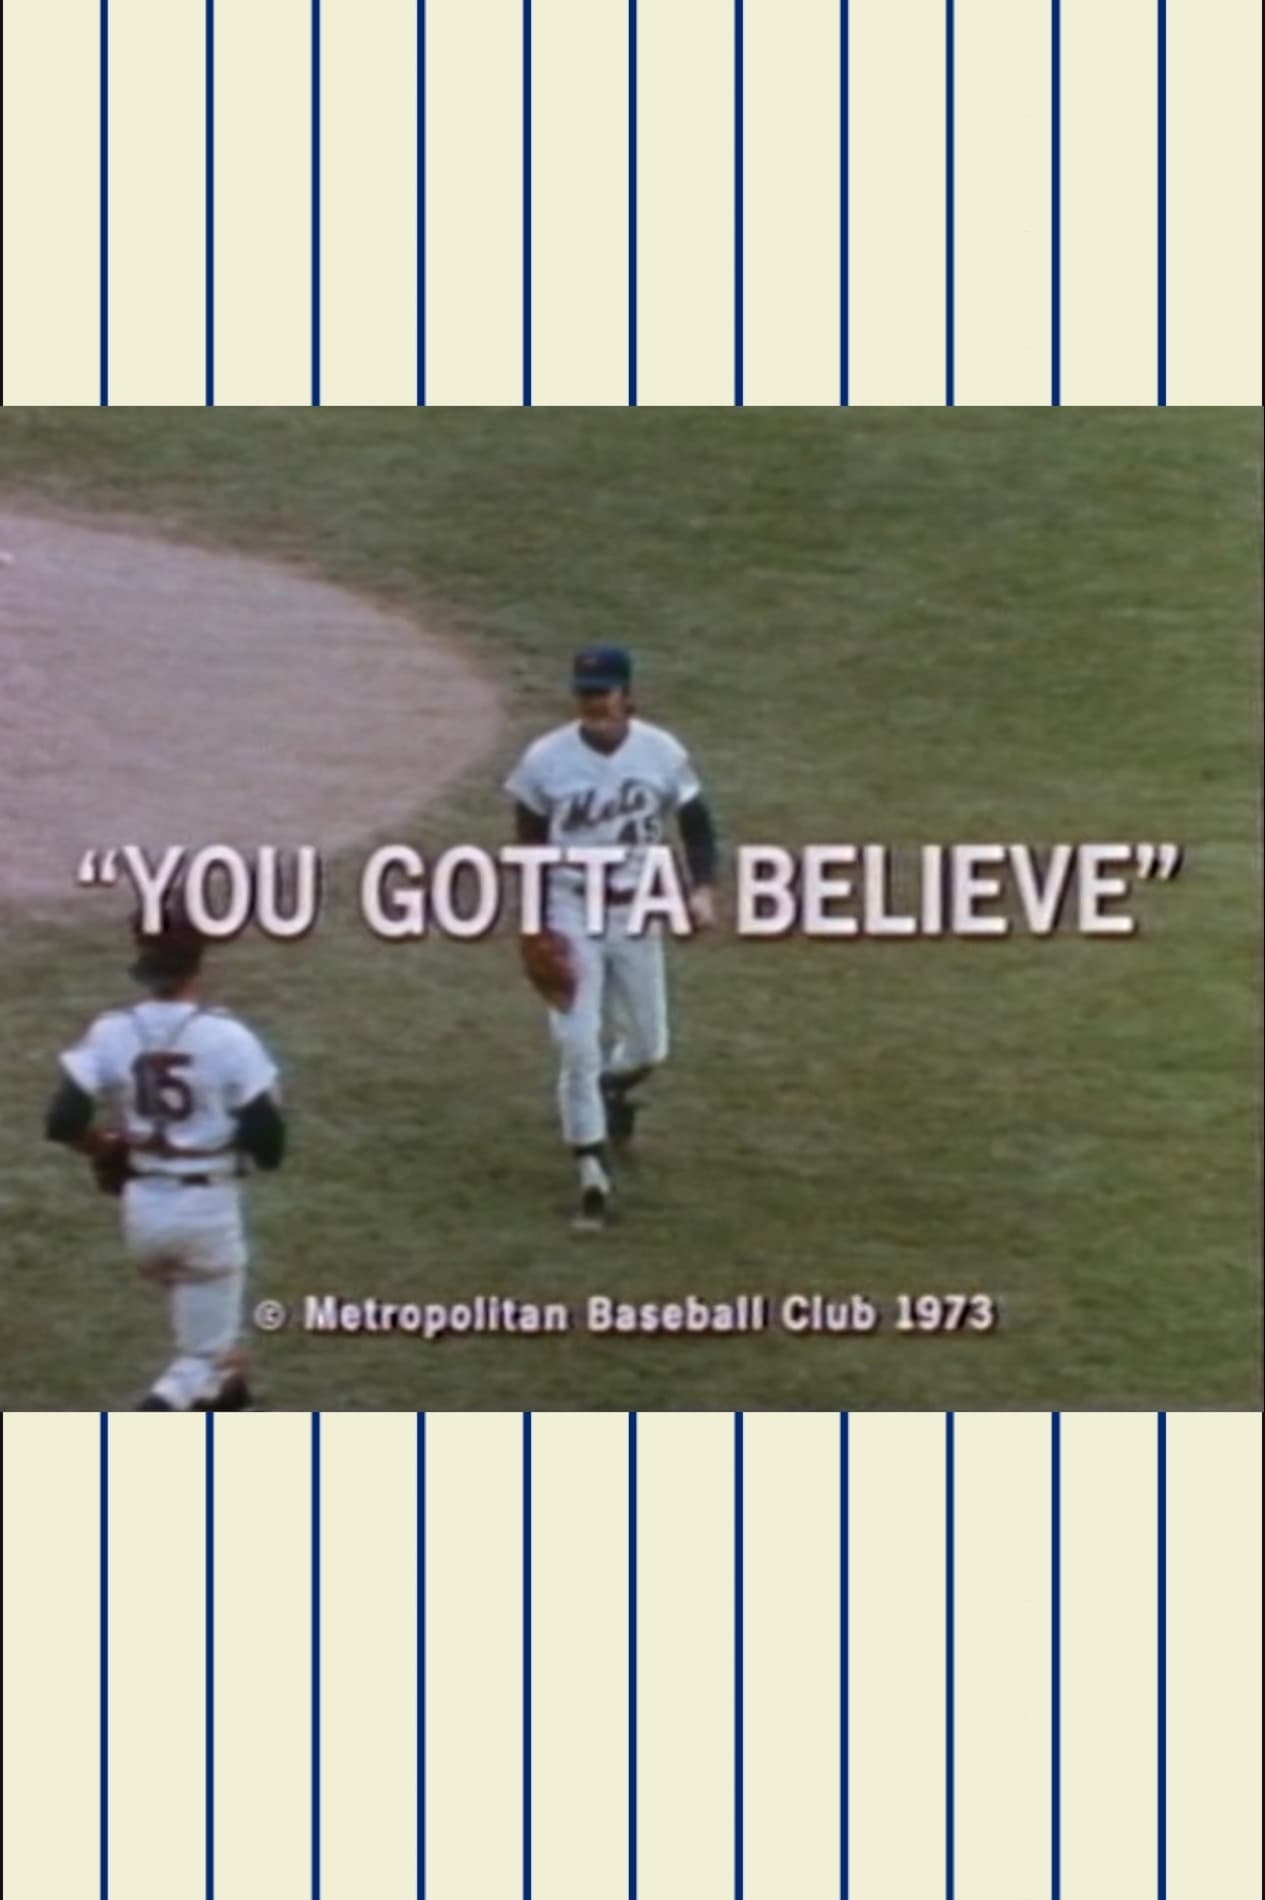 Ya Gotta Believe!  The 1973 Mets Official Highlight Film (1970)